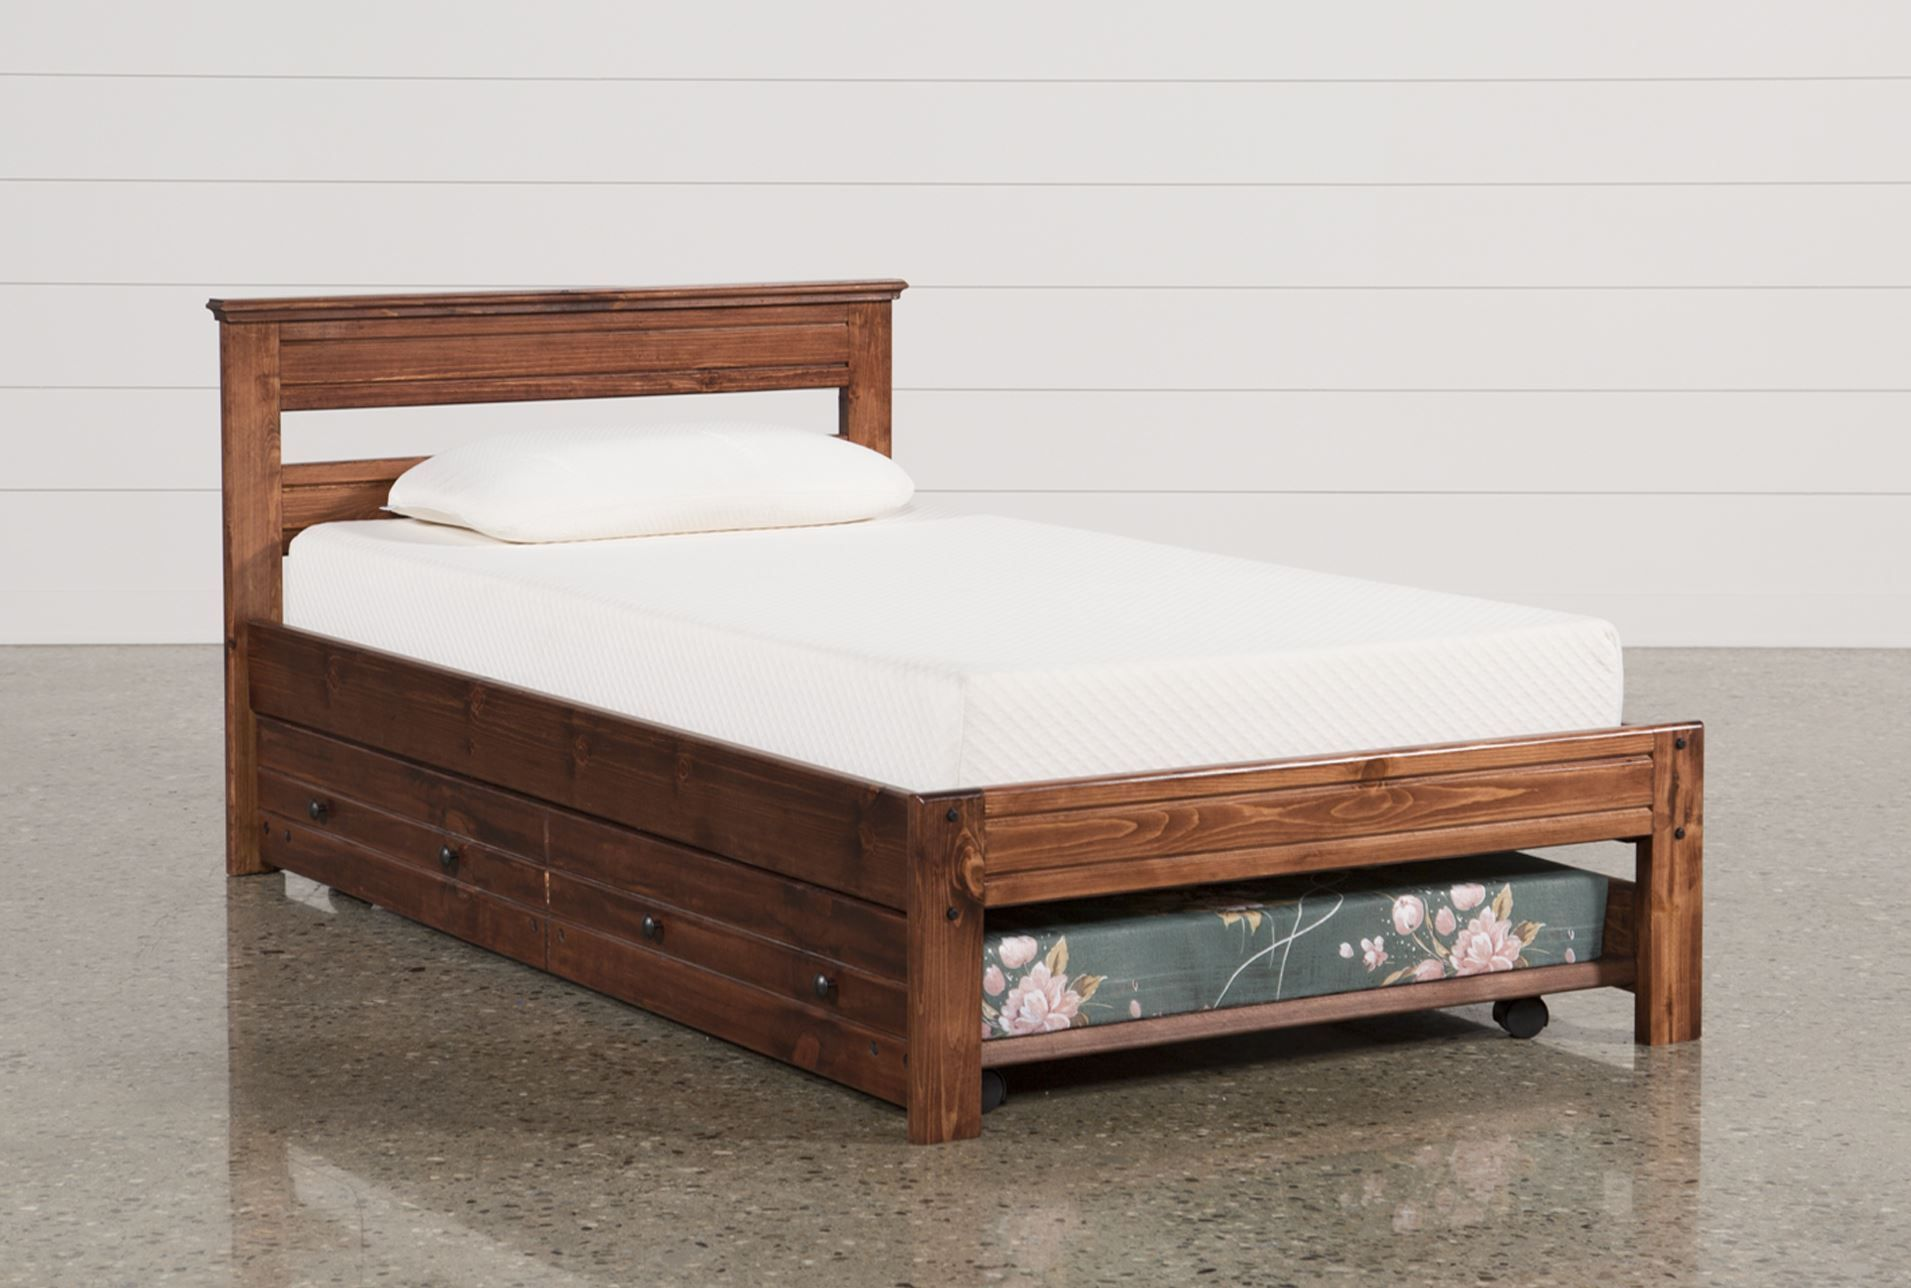 Sedona Twin Platform Bed With Trundle With Mattress Would Love